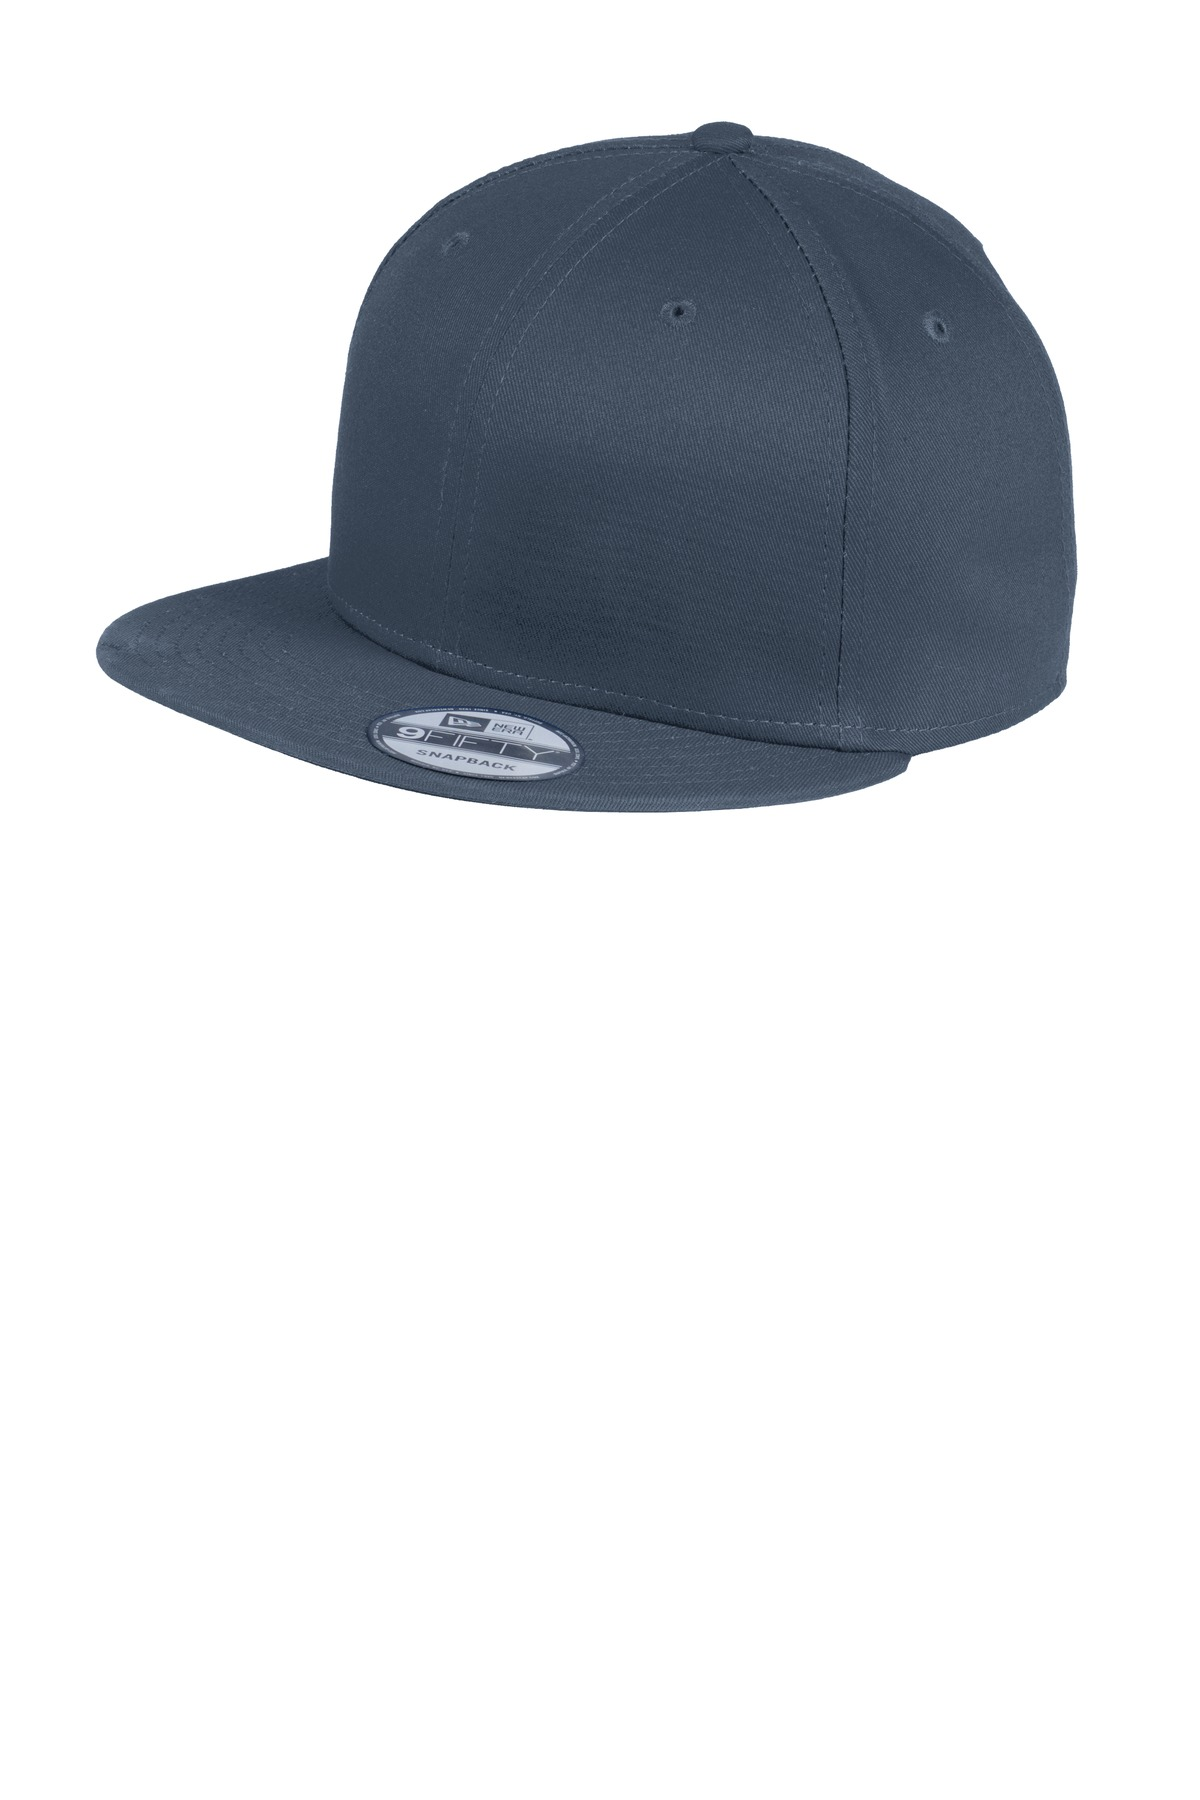 New Era ®  - Flat Bill Snapback Cap. NE400 - Deep Navy